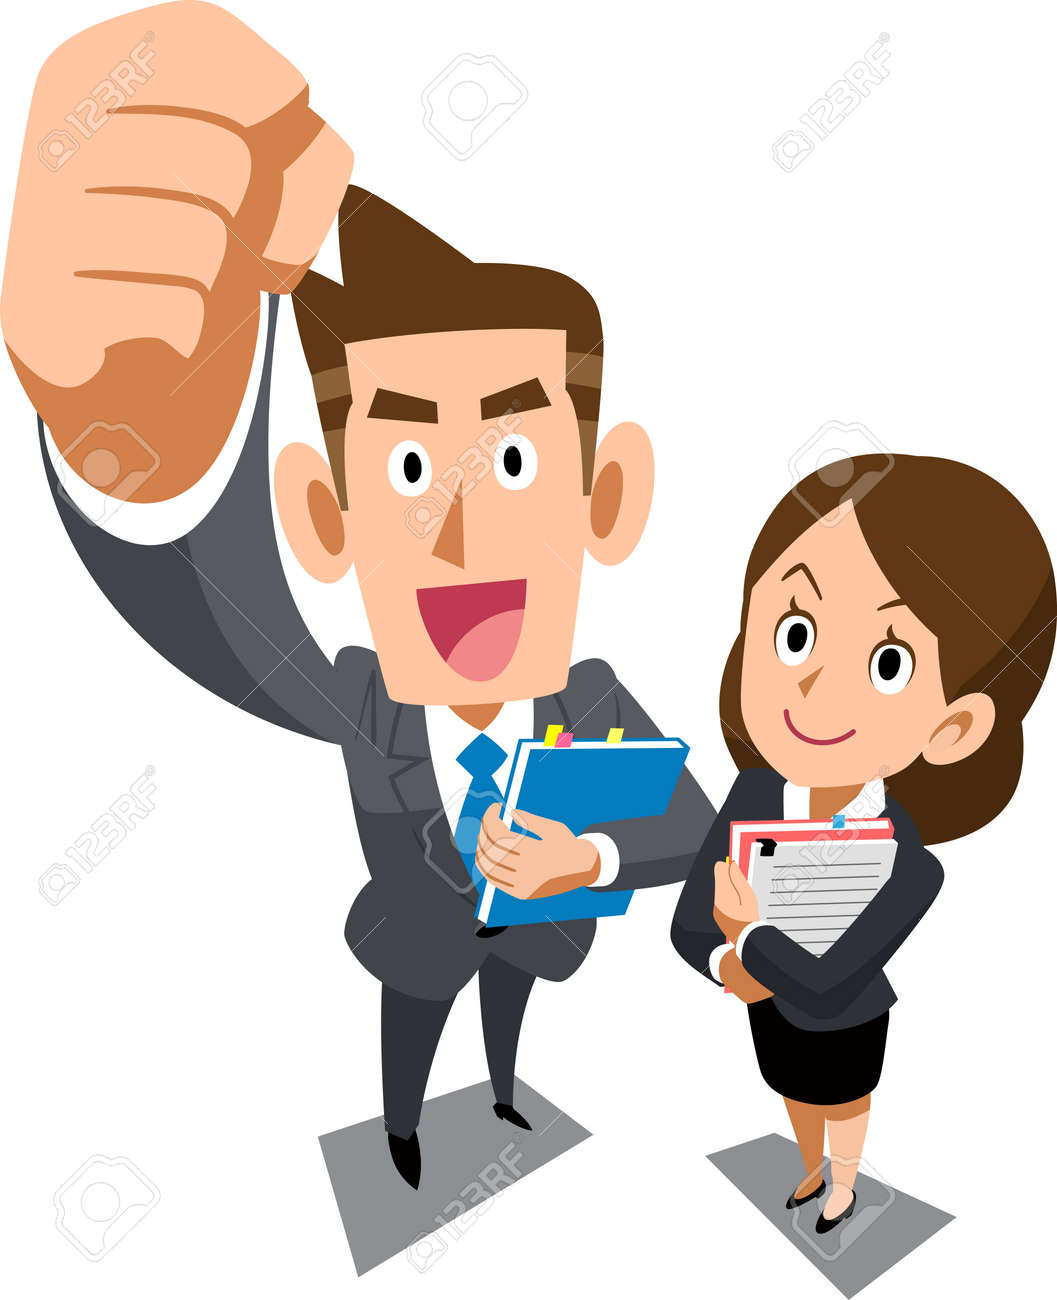 Male and female young businessperson of positive image _ Overhead view - 114736634